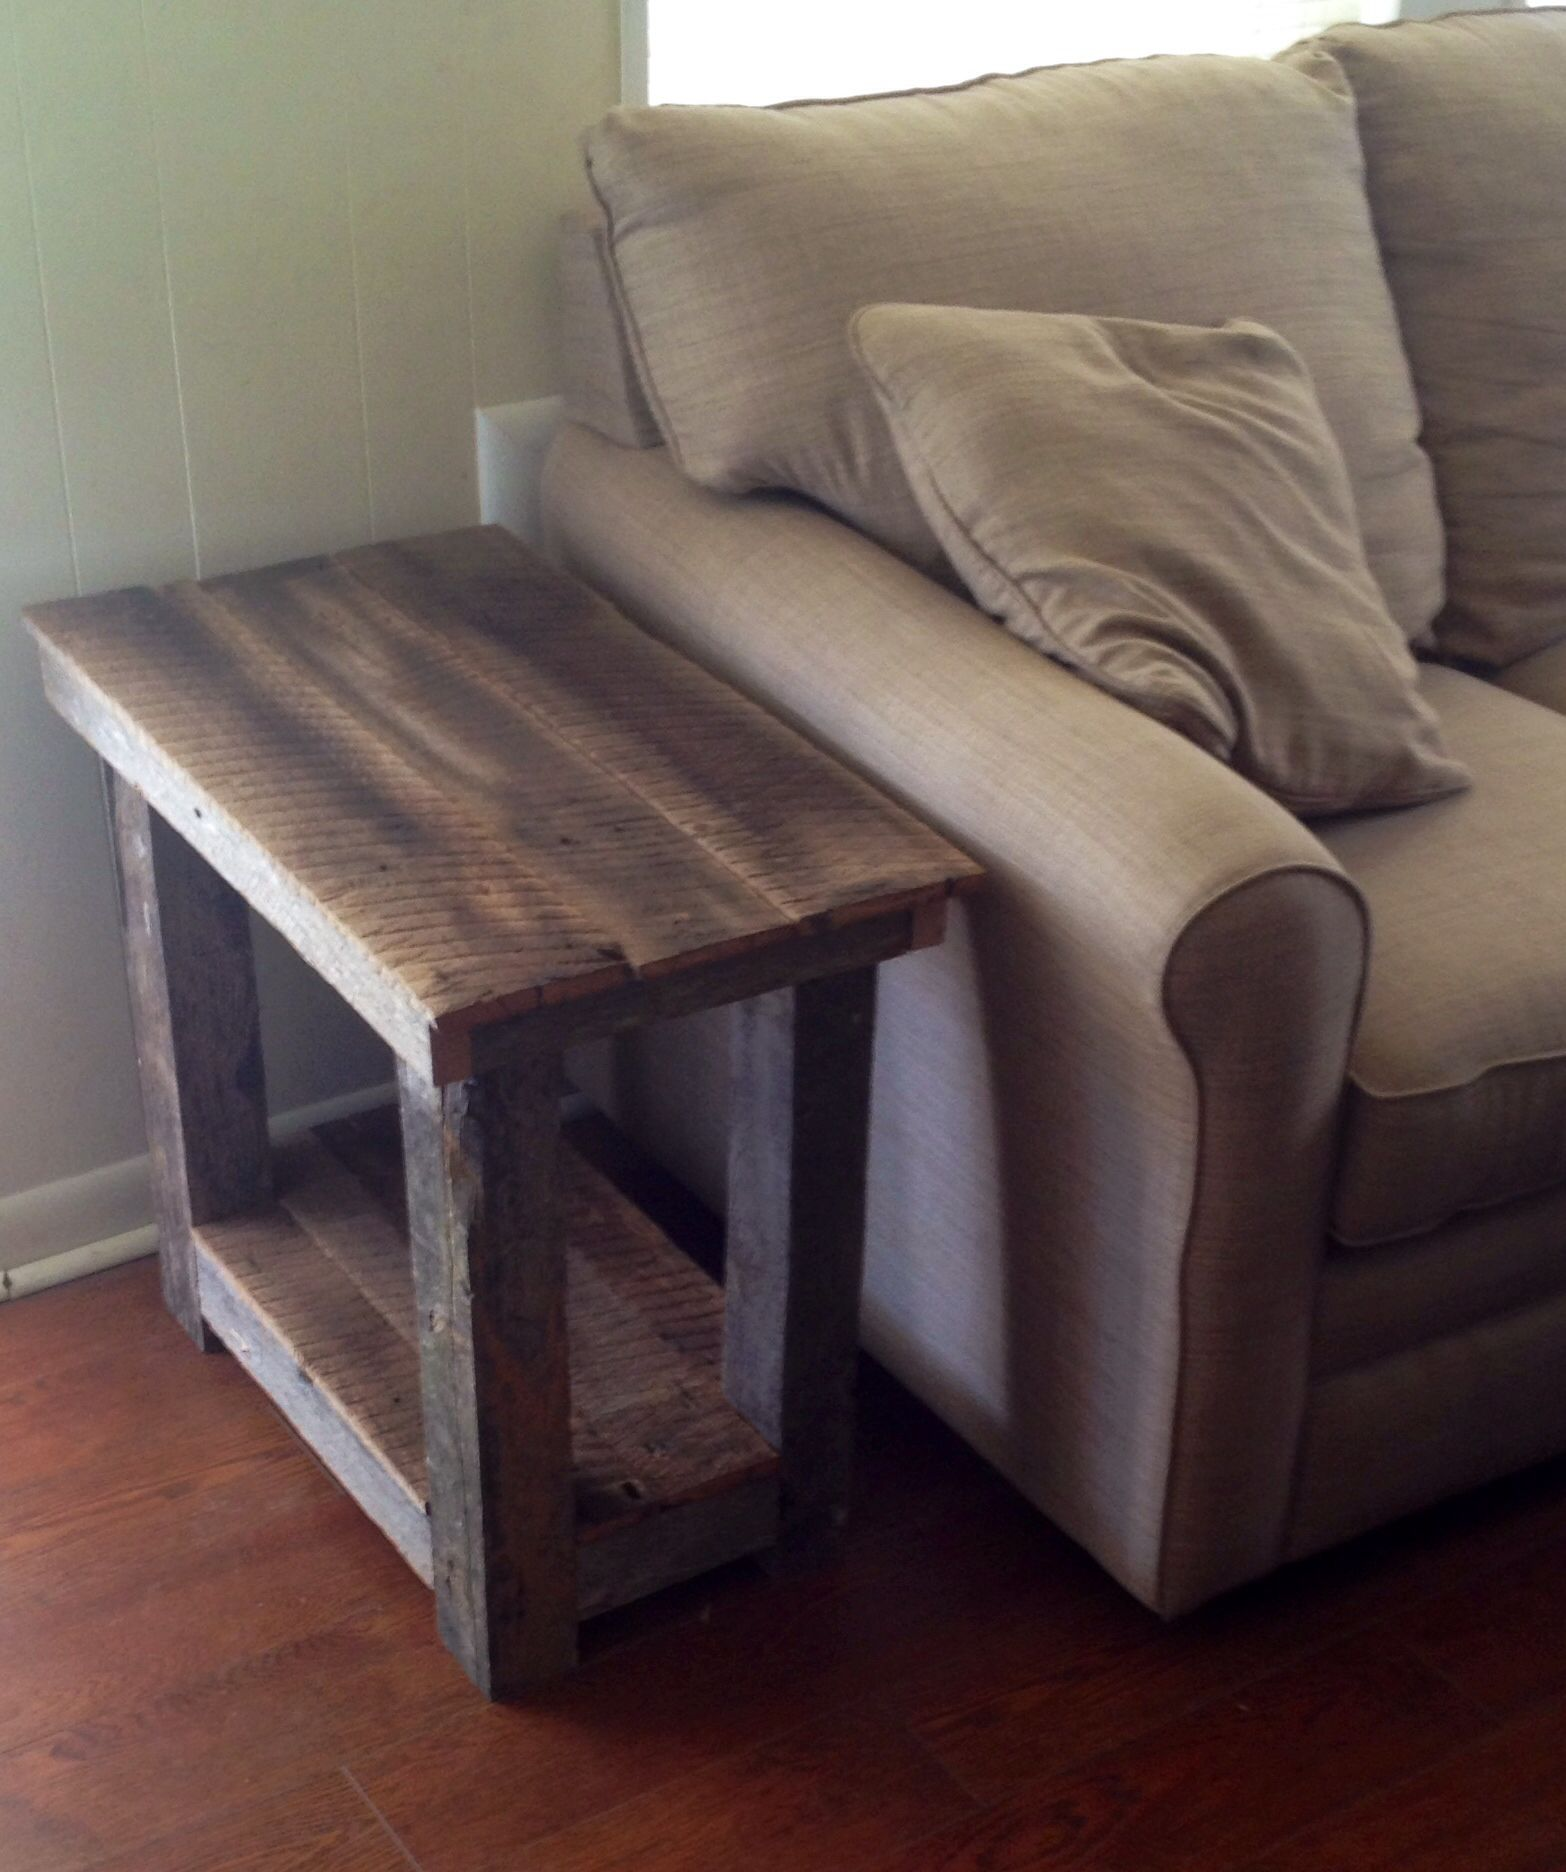 barn wood end table built from old field here what rustic reclaimed accent tables looks like next the couch marble top pedestal outdoor beach decor side storage cabinet pink lamp